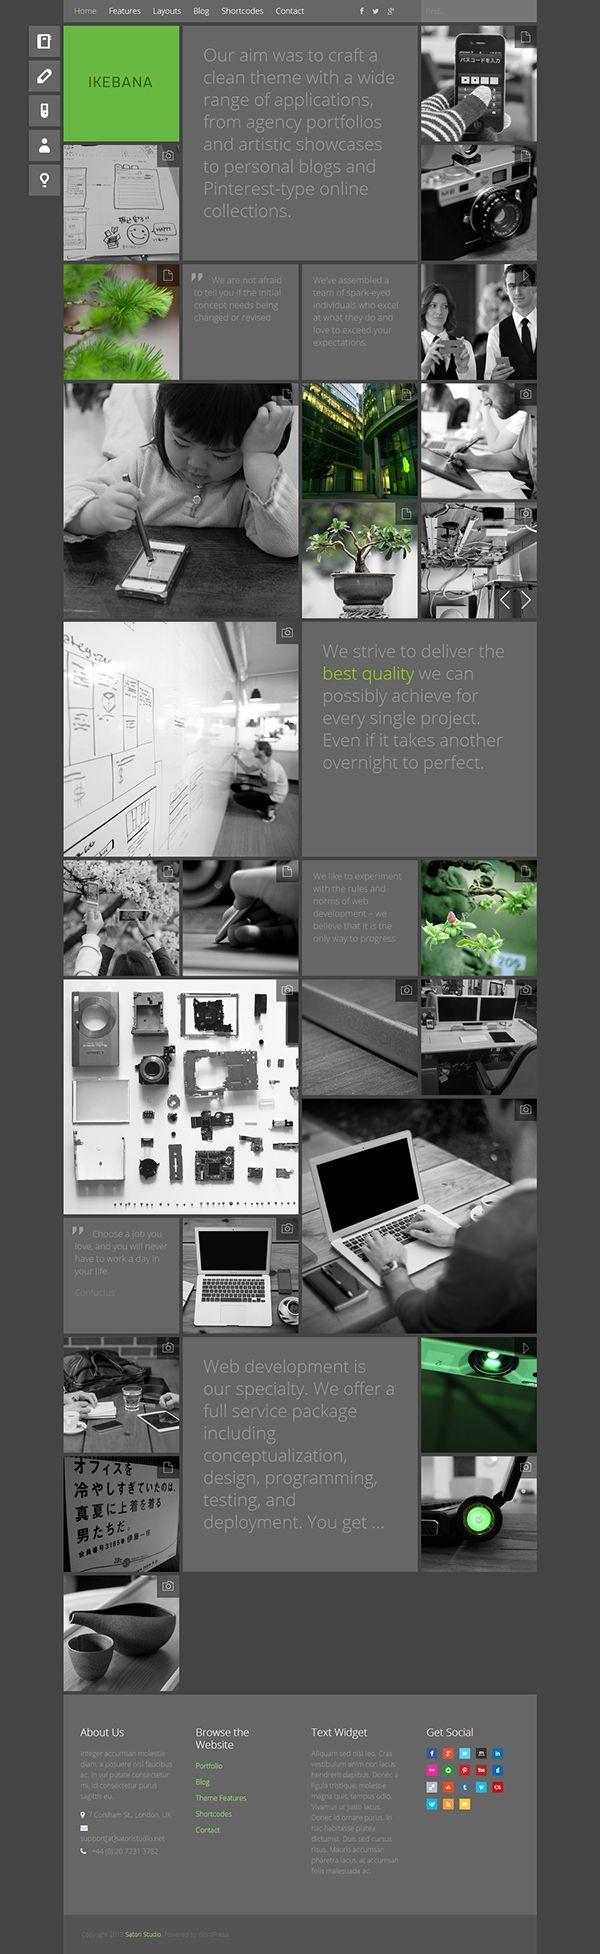 Ikebana - WP Portfolio Theme on Behance